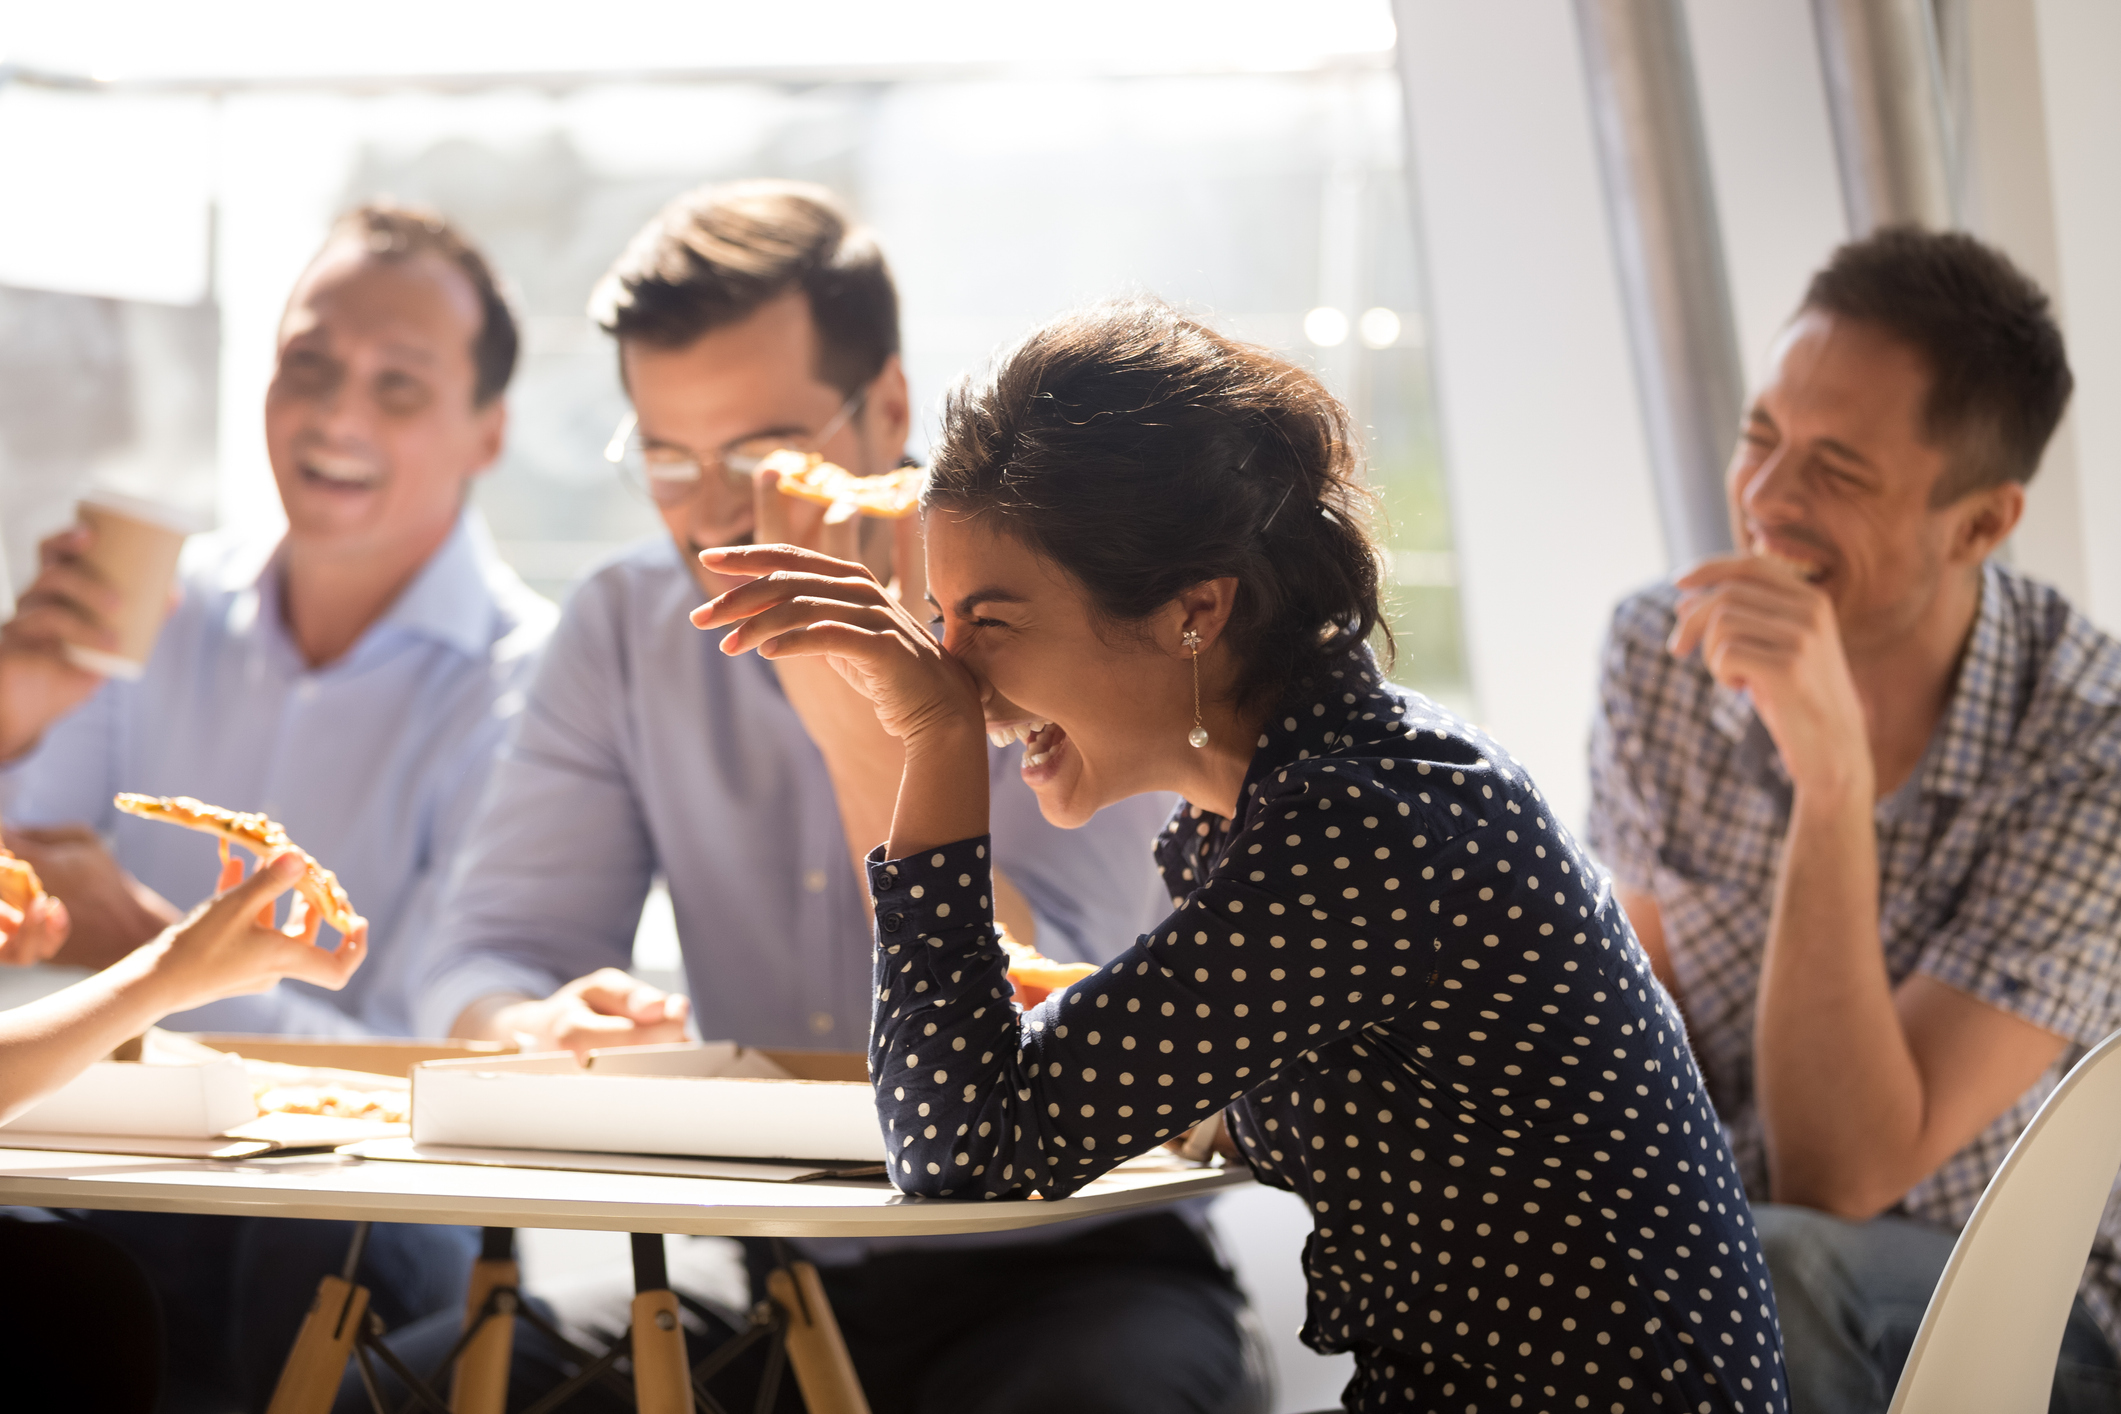 A group of office employees laughing and eating pizza.